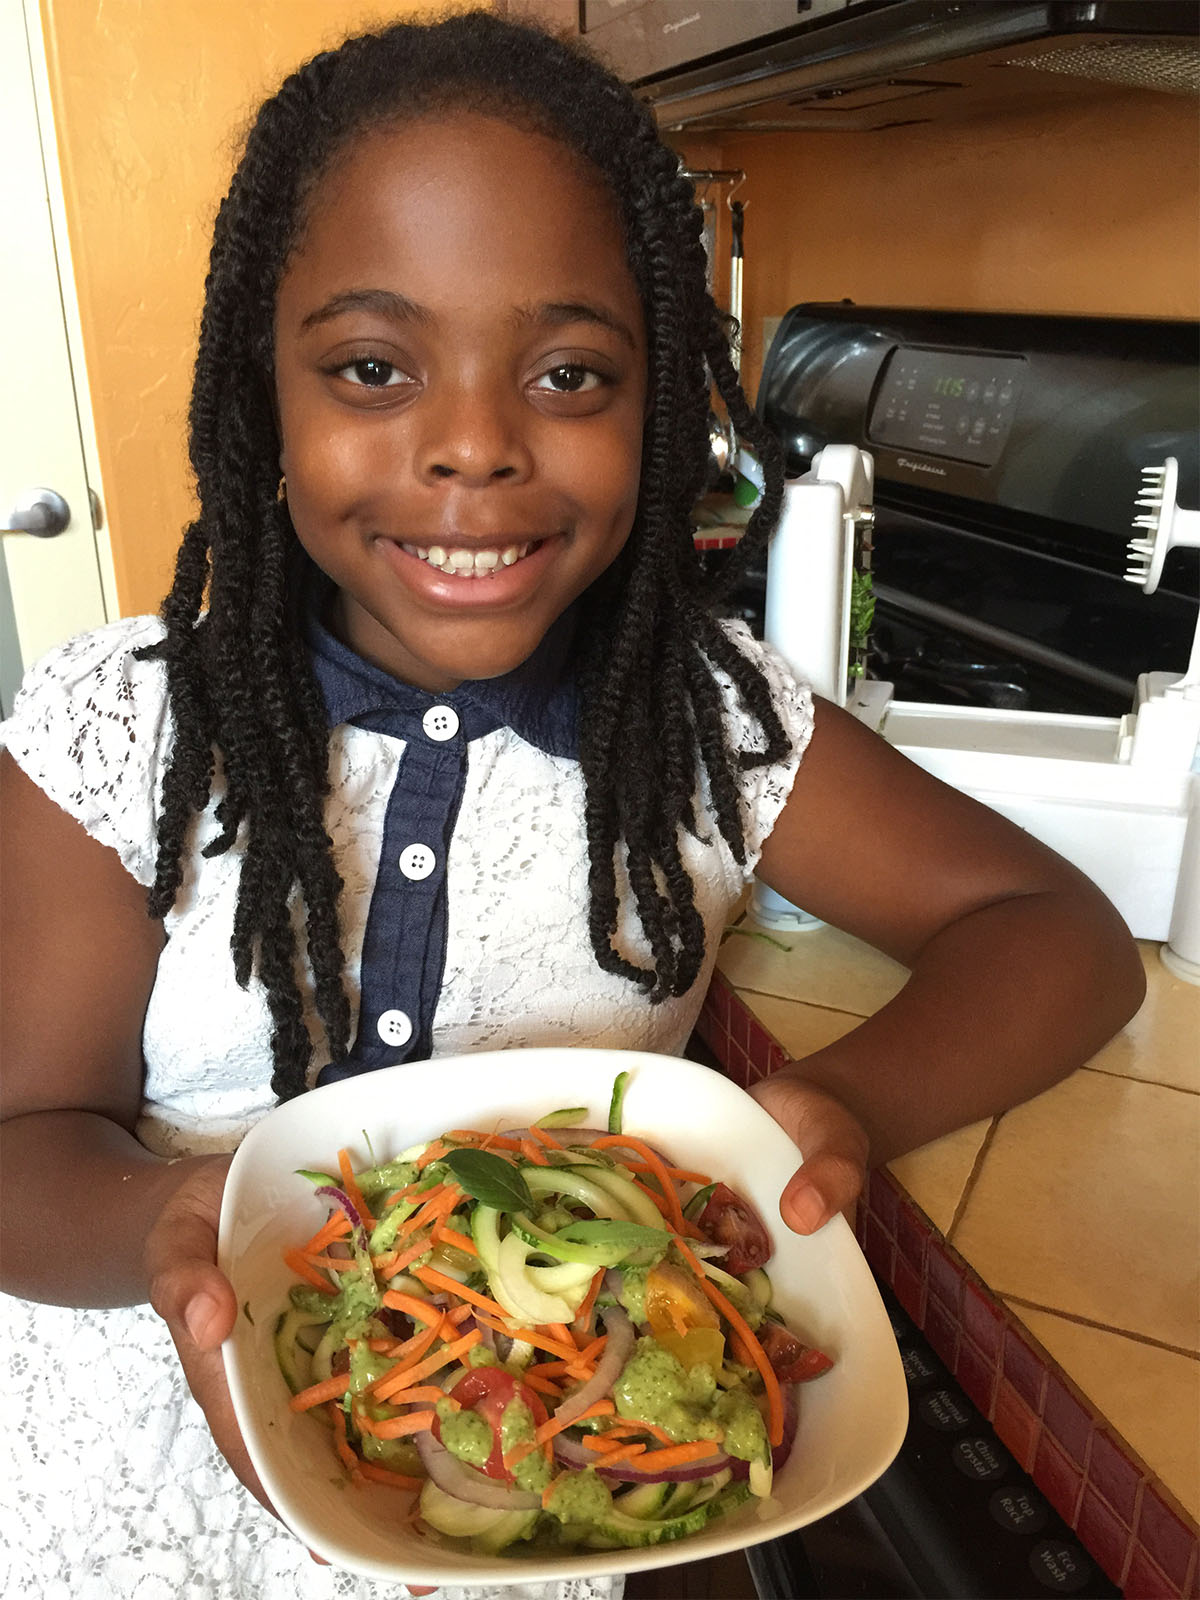 Nia Thomas, winner of 2015 Healthy Lunchtime Challenge